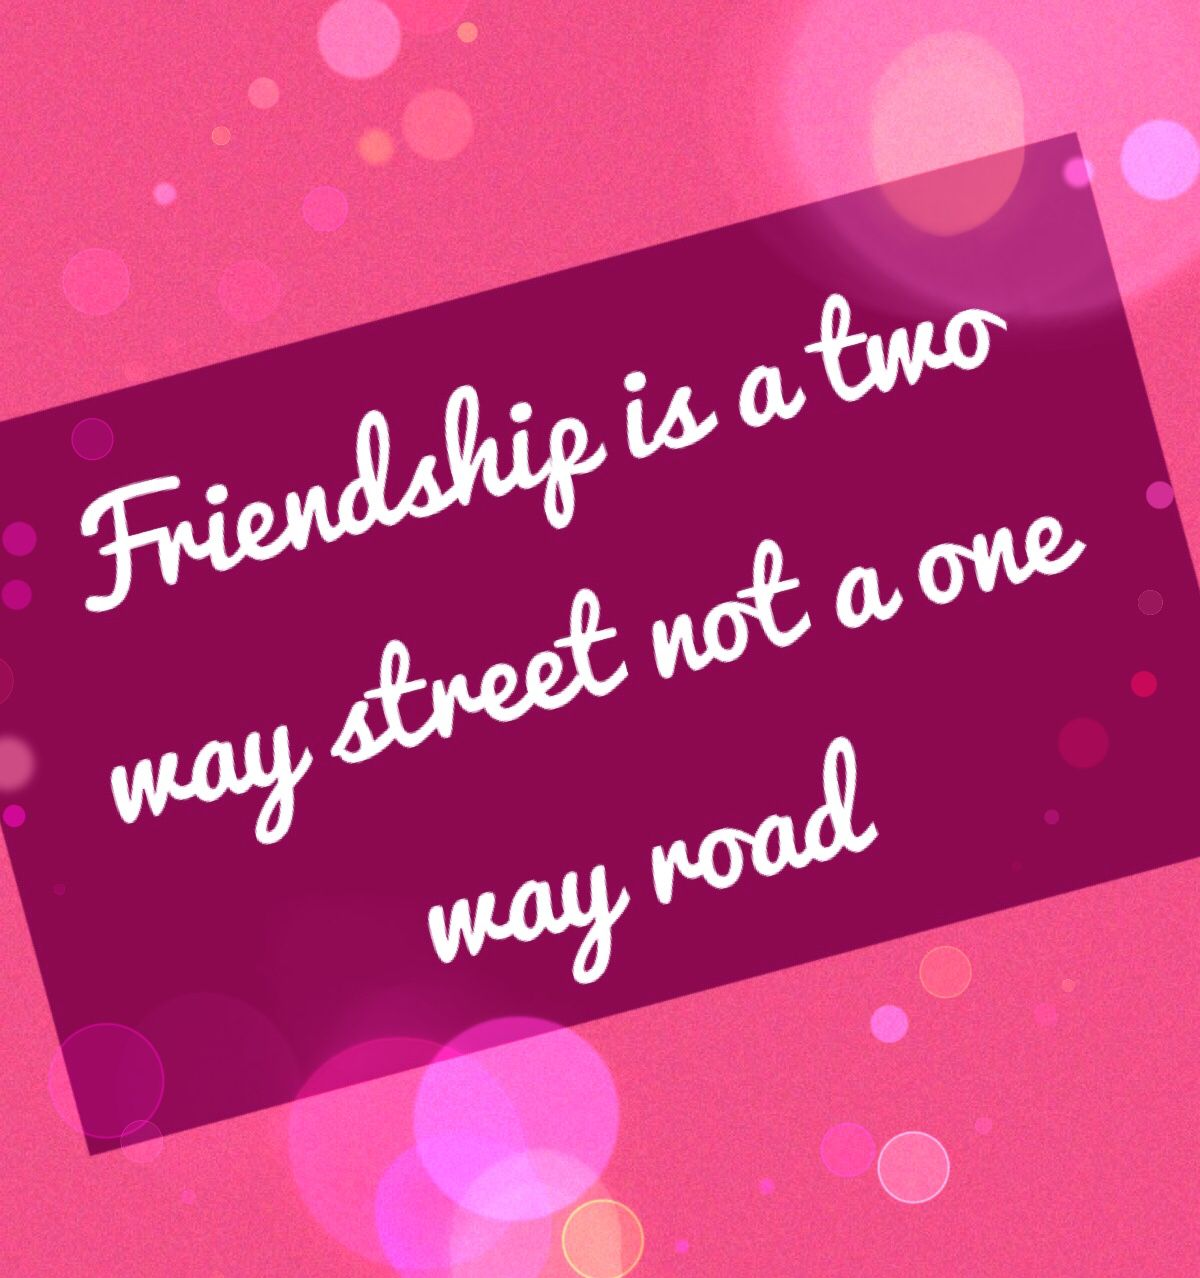 Quotes About Friends And Friendship Friendship Is A Two Way Street Not A One Way Road.friends